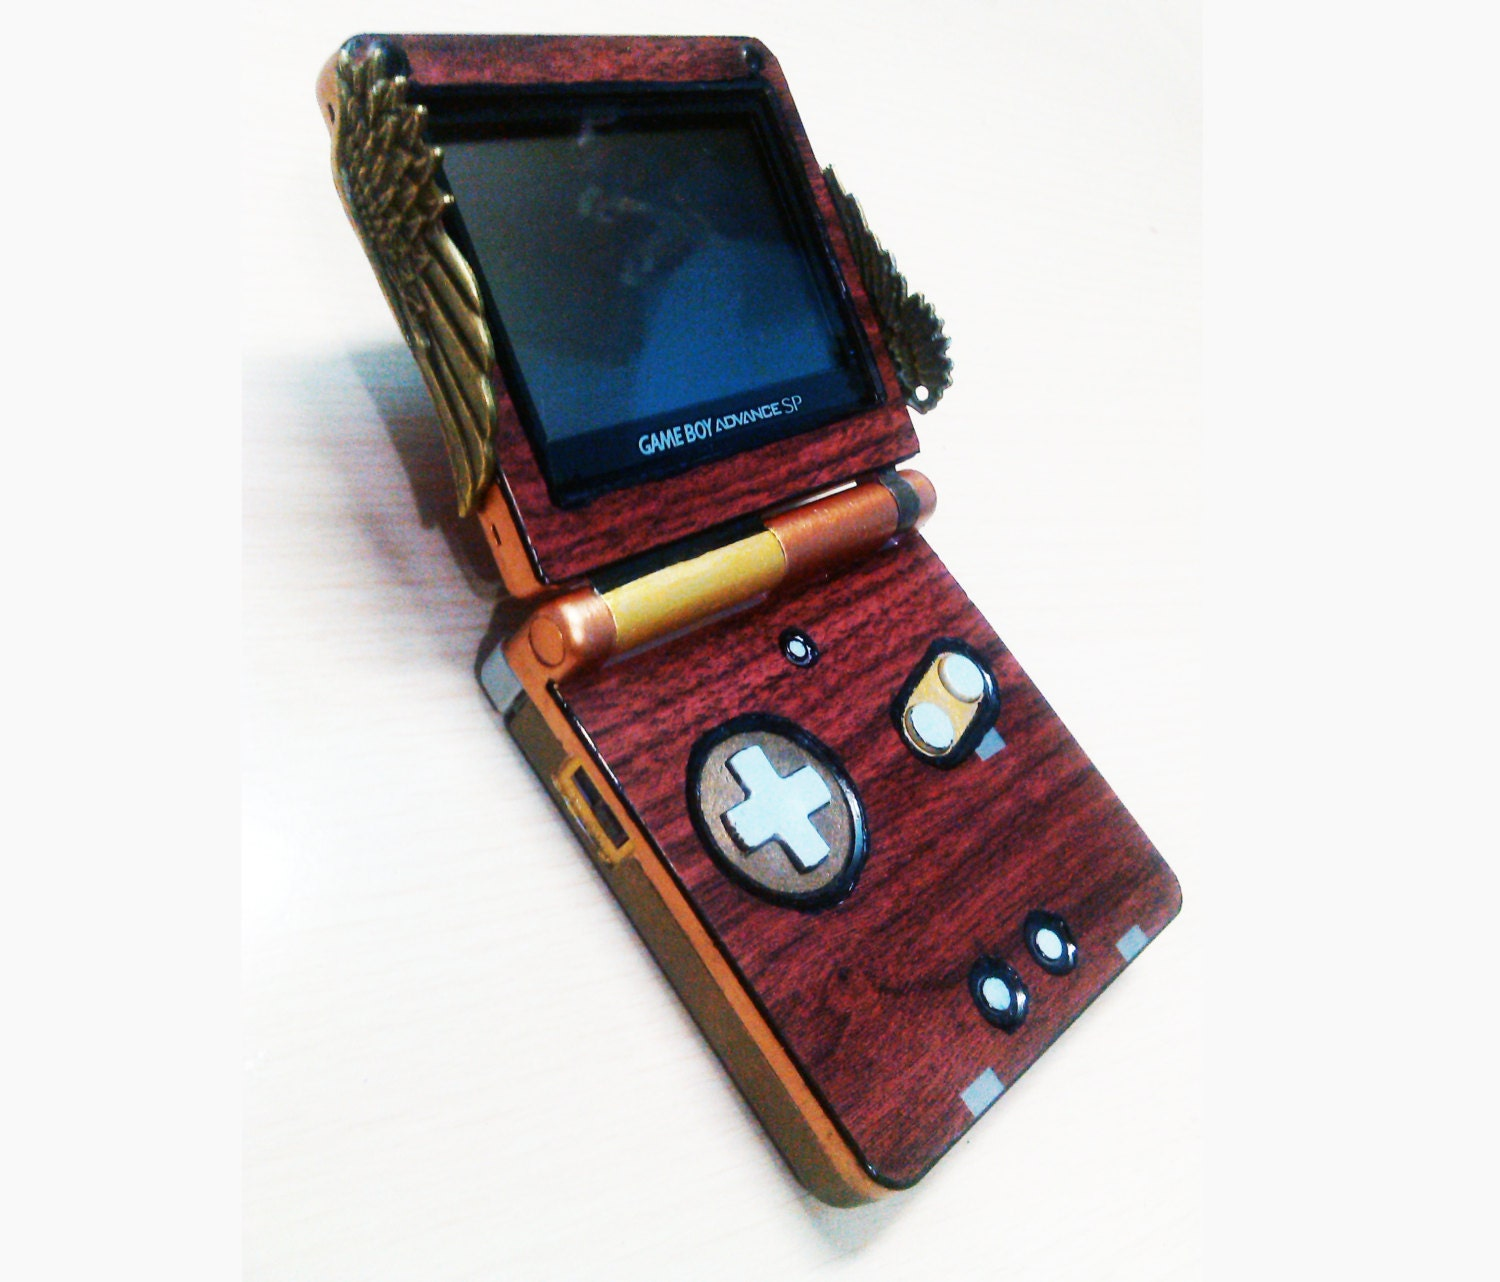 Gameboy color and advance rpg games - Game Boy Advance Sp Steampunk Custom Personalized Gameboy